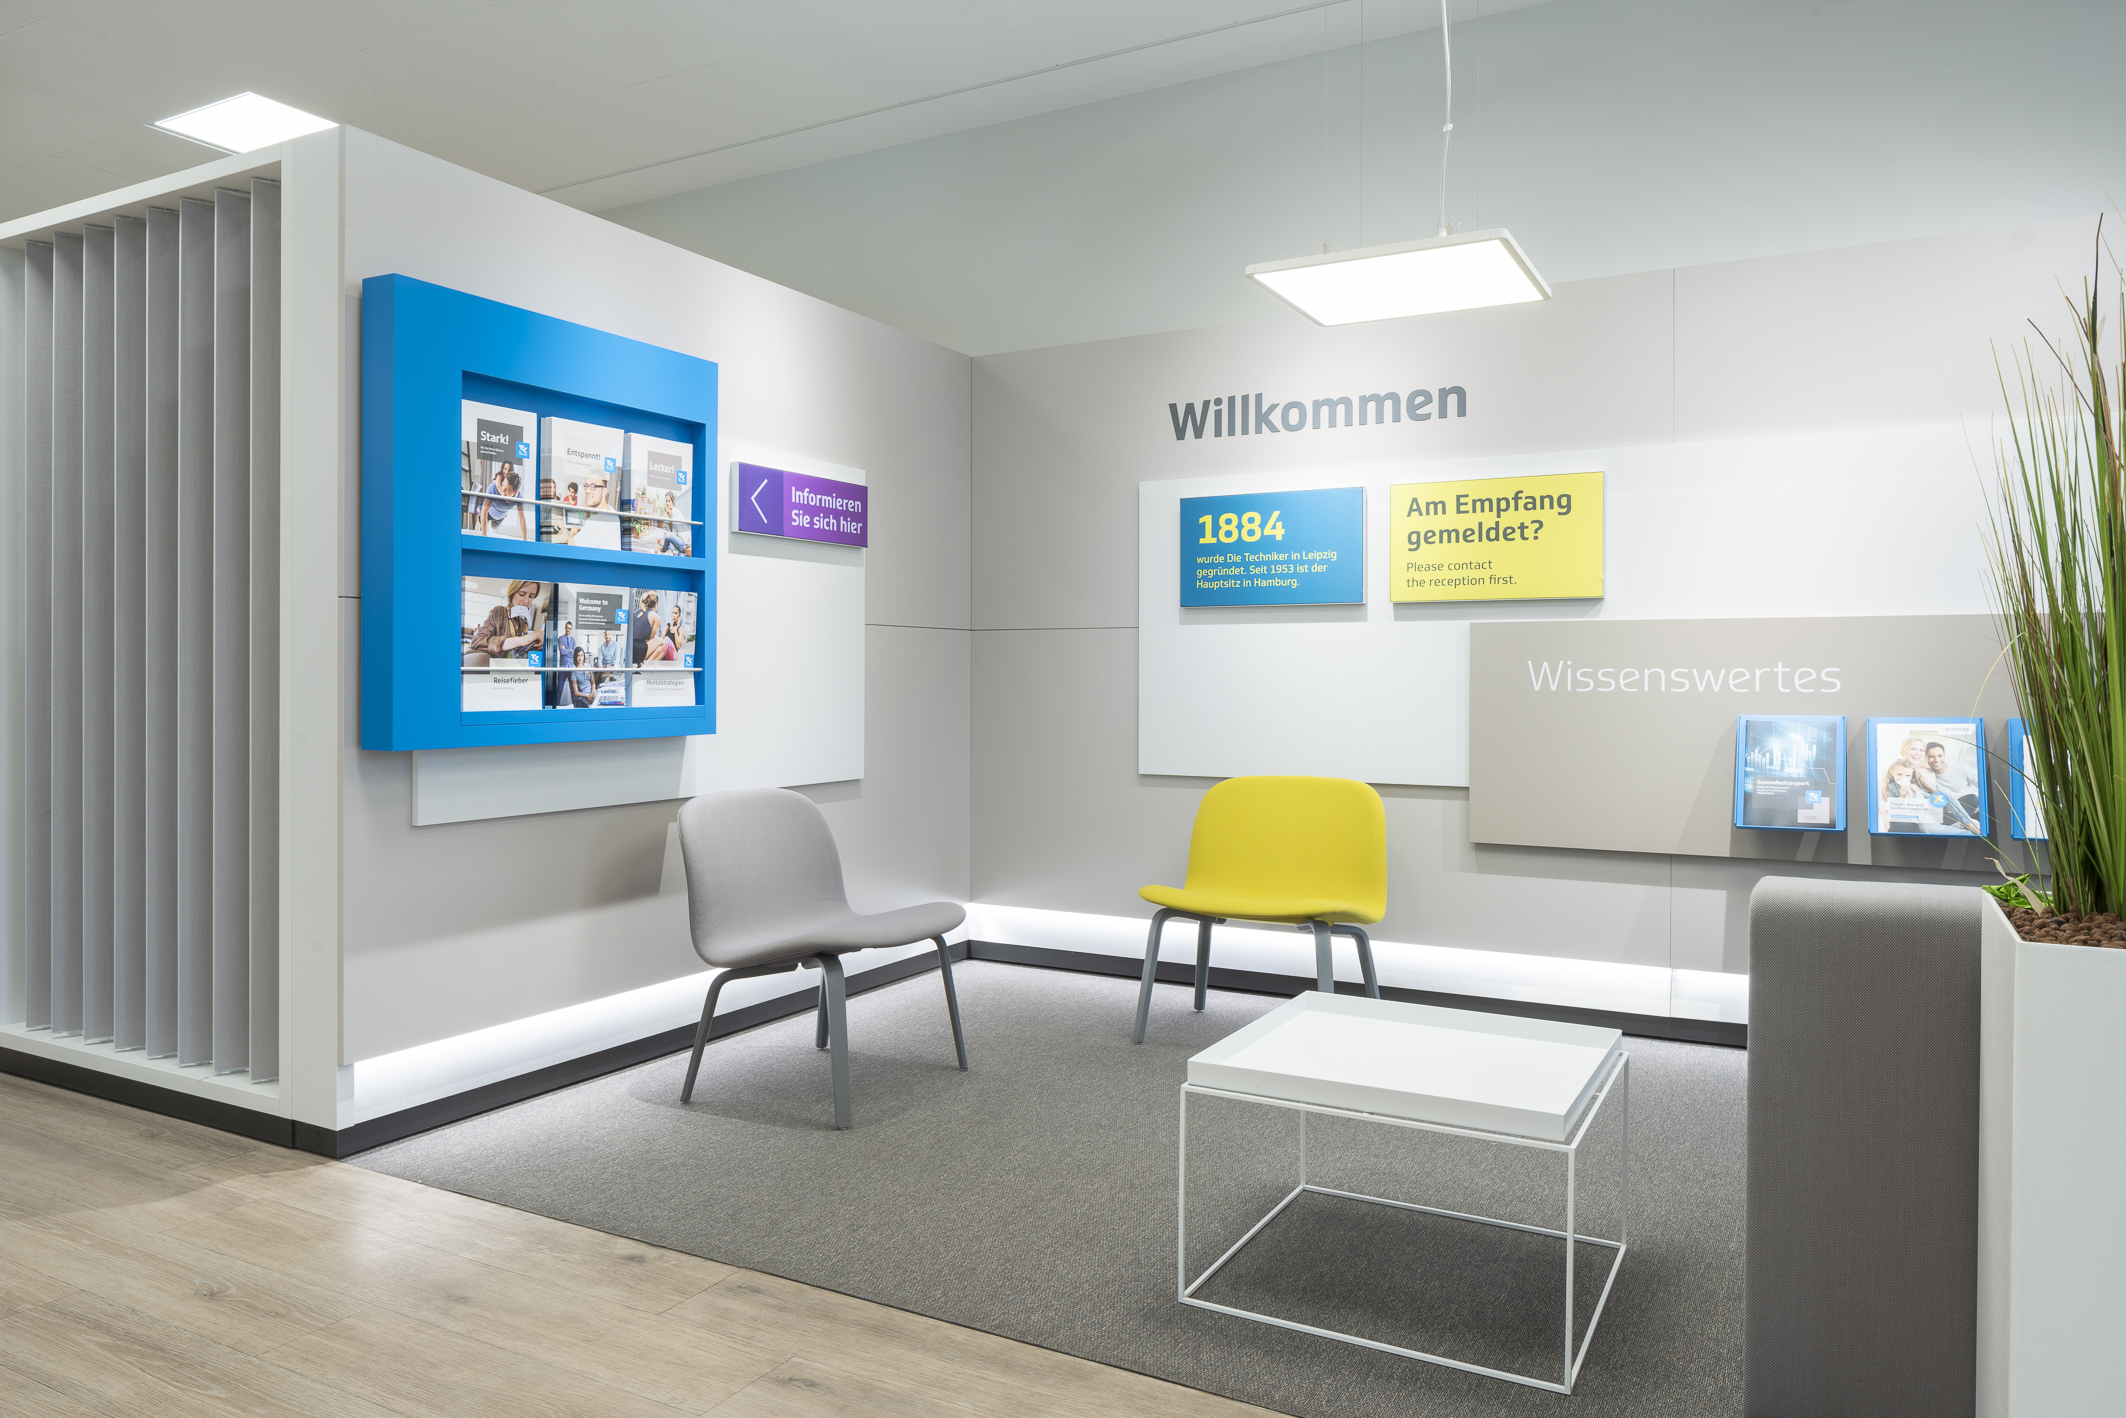 Waiting area information bright with color accents